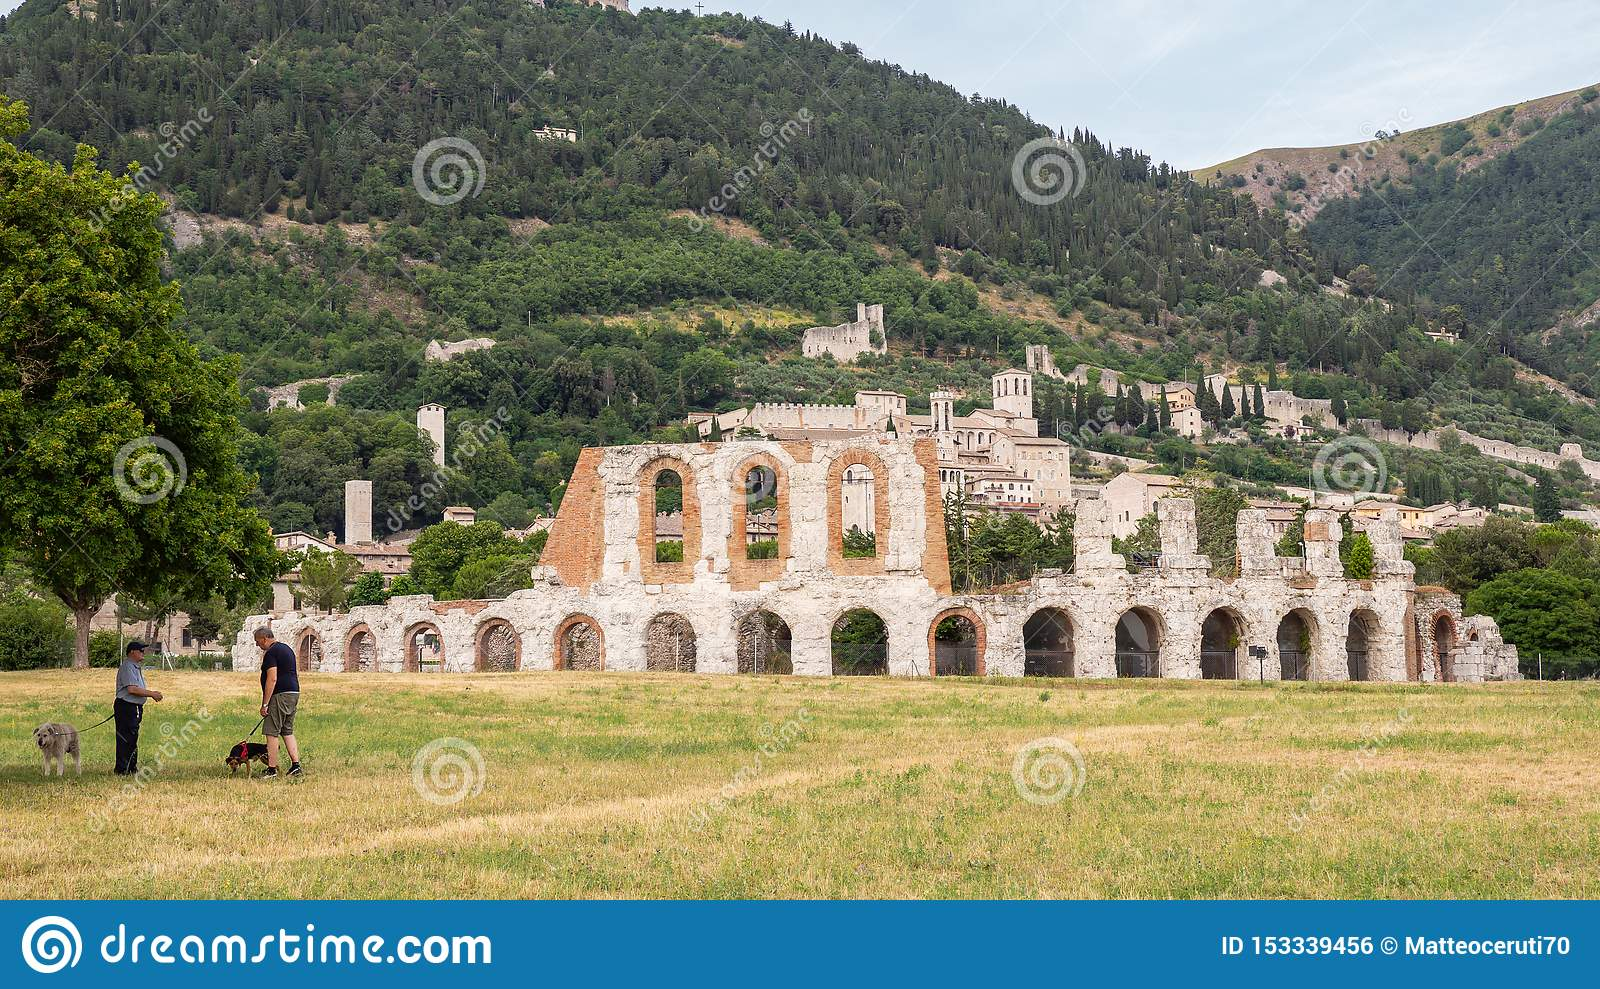 Gubbio, Italy. Amazing view of the ruins of the Roman theater and the city. It is one of the most beautiful small town in Italy